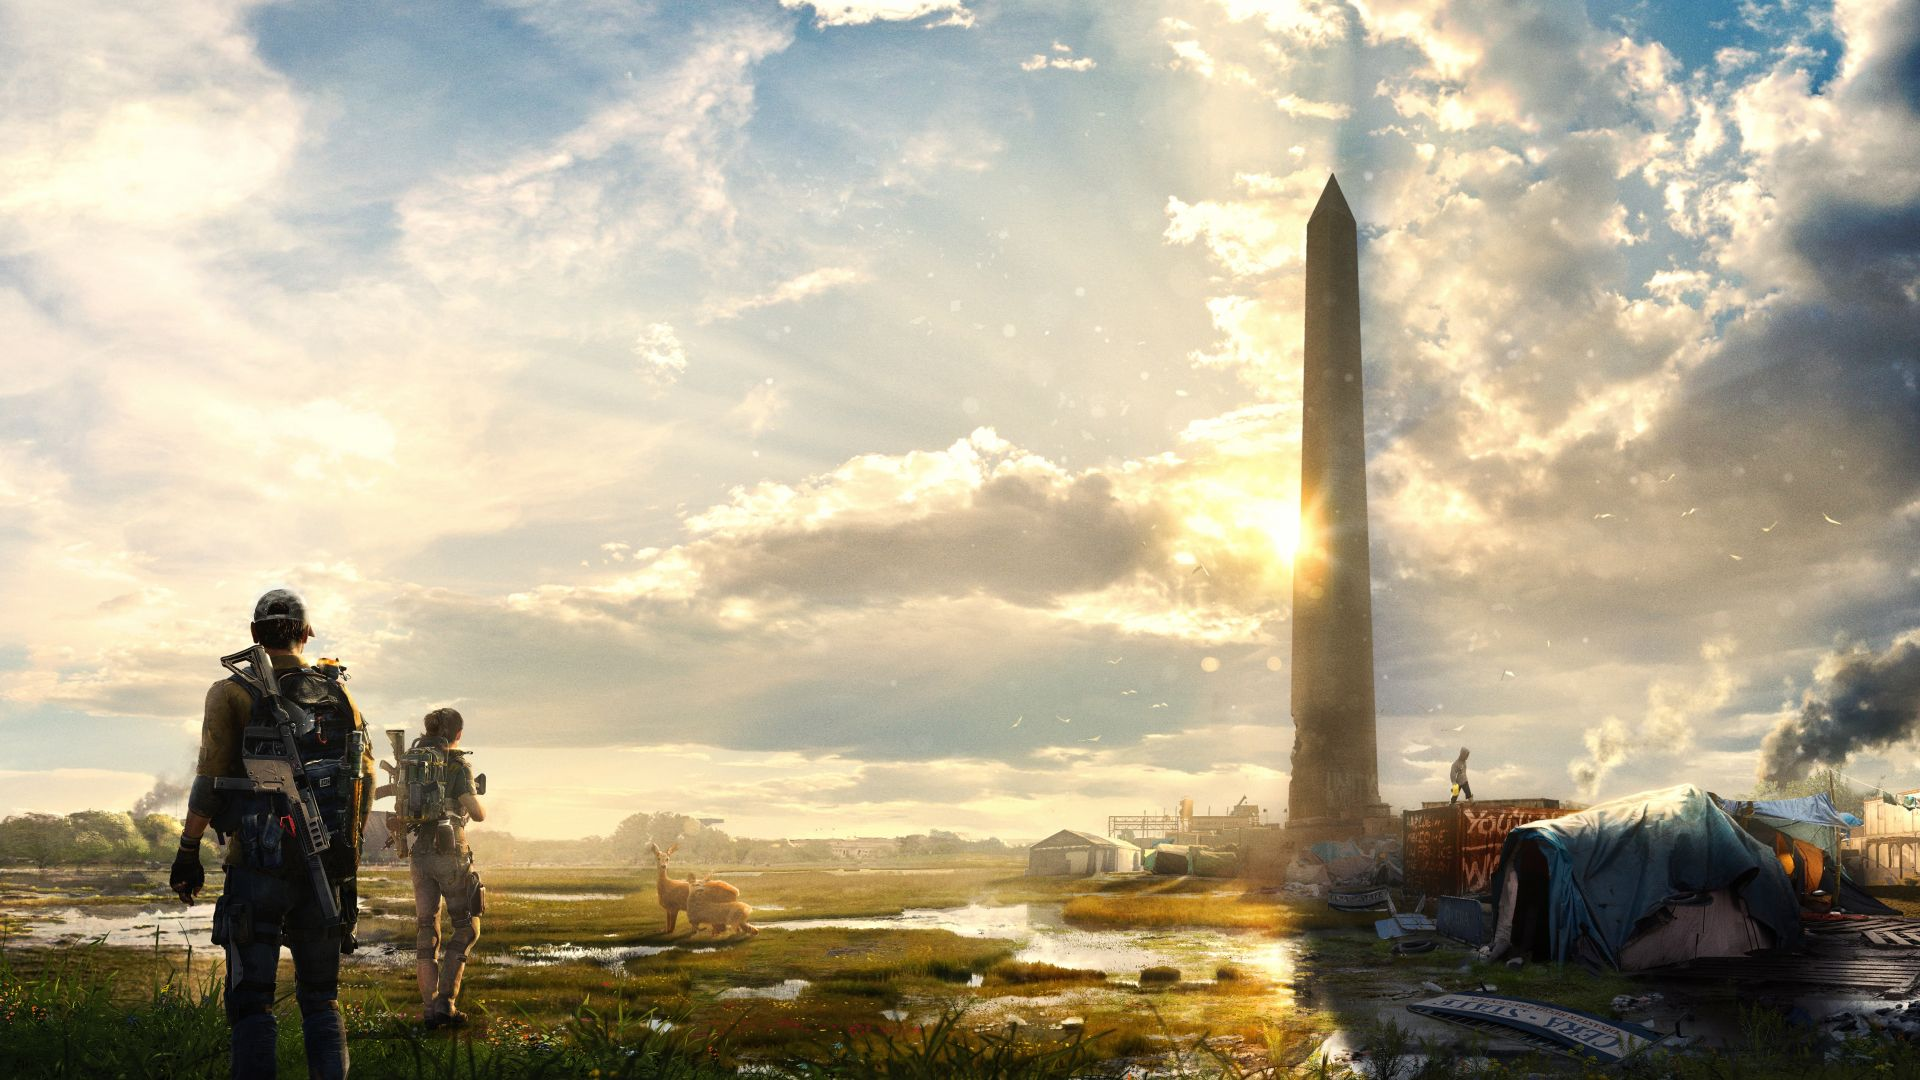 Top 13 The Division 2 Wallpapers In 4k And Full Hd For Desktop